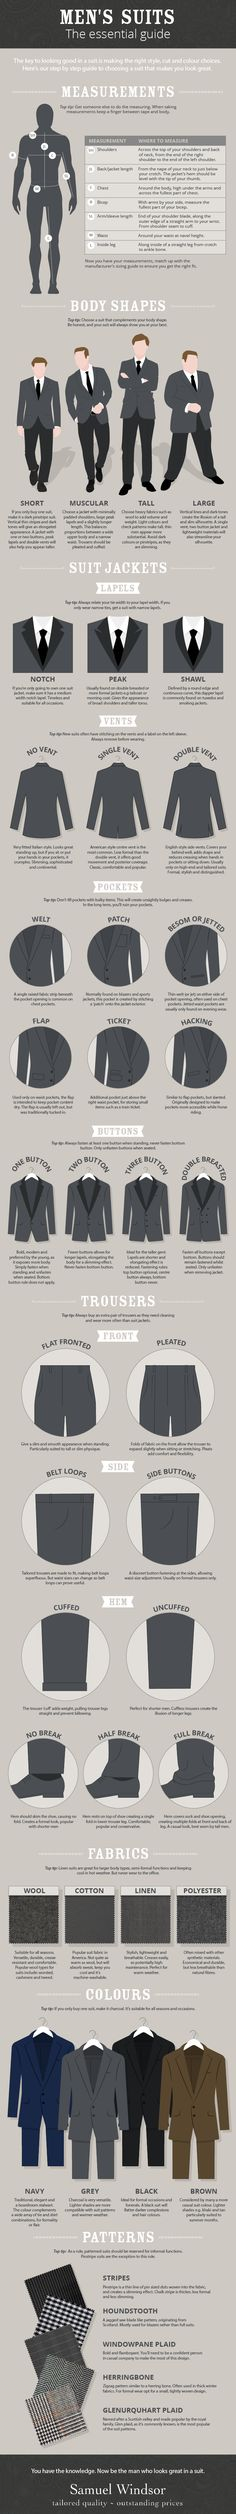 The essential guide to men's suits - infographic